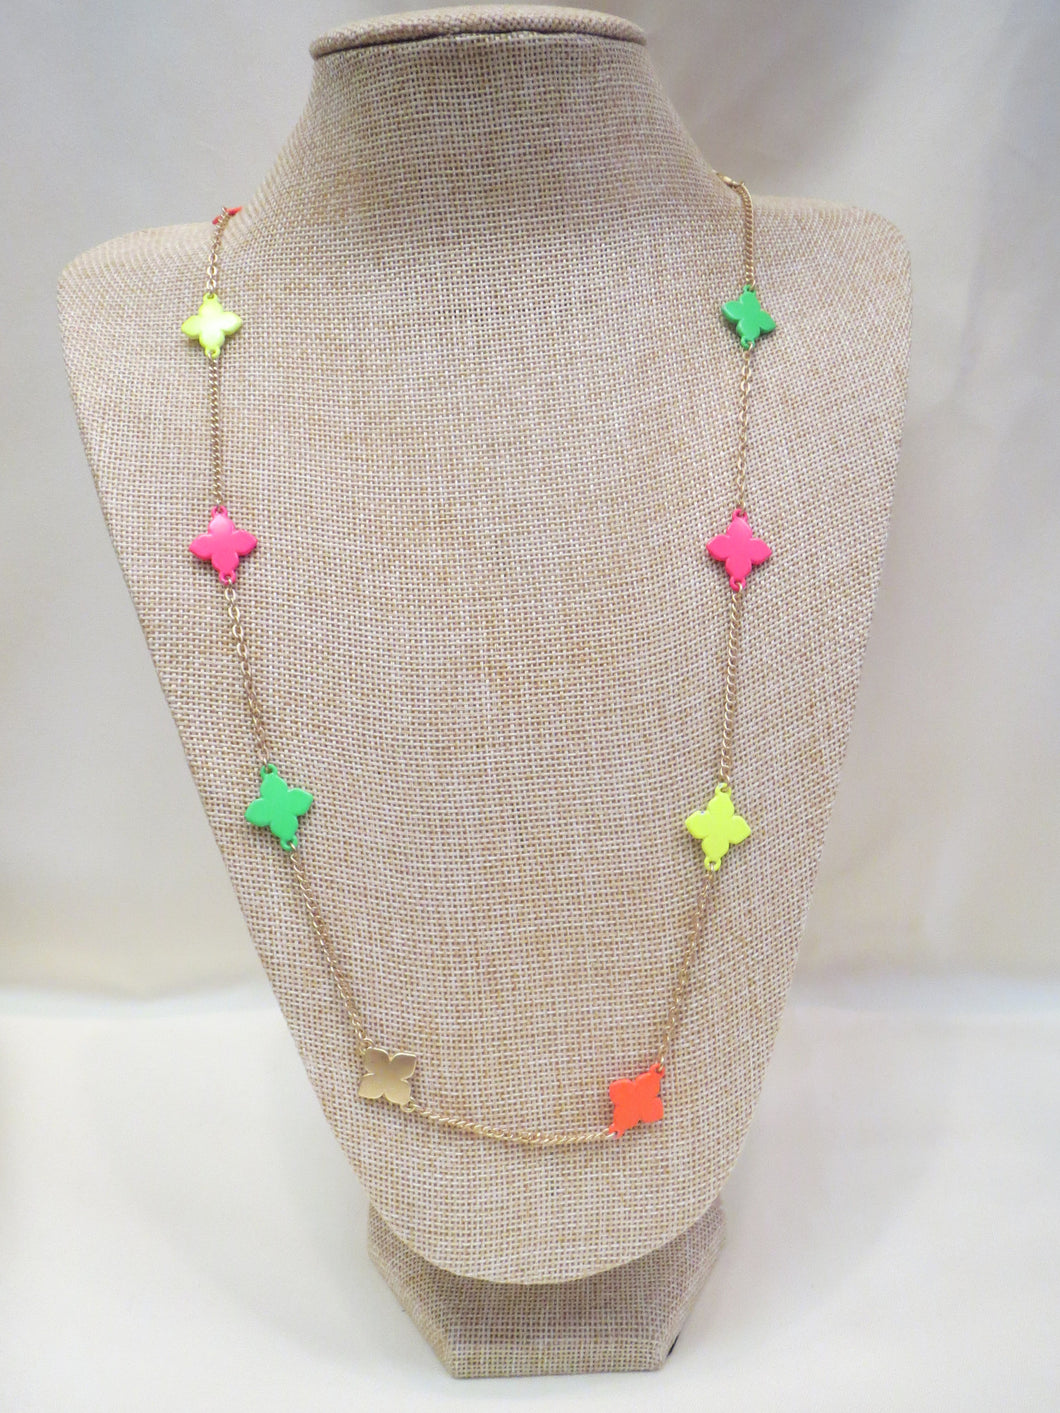 ADO Neon Crosses Gold Chain Necklace | All Dec'd Out